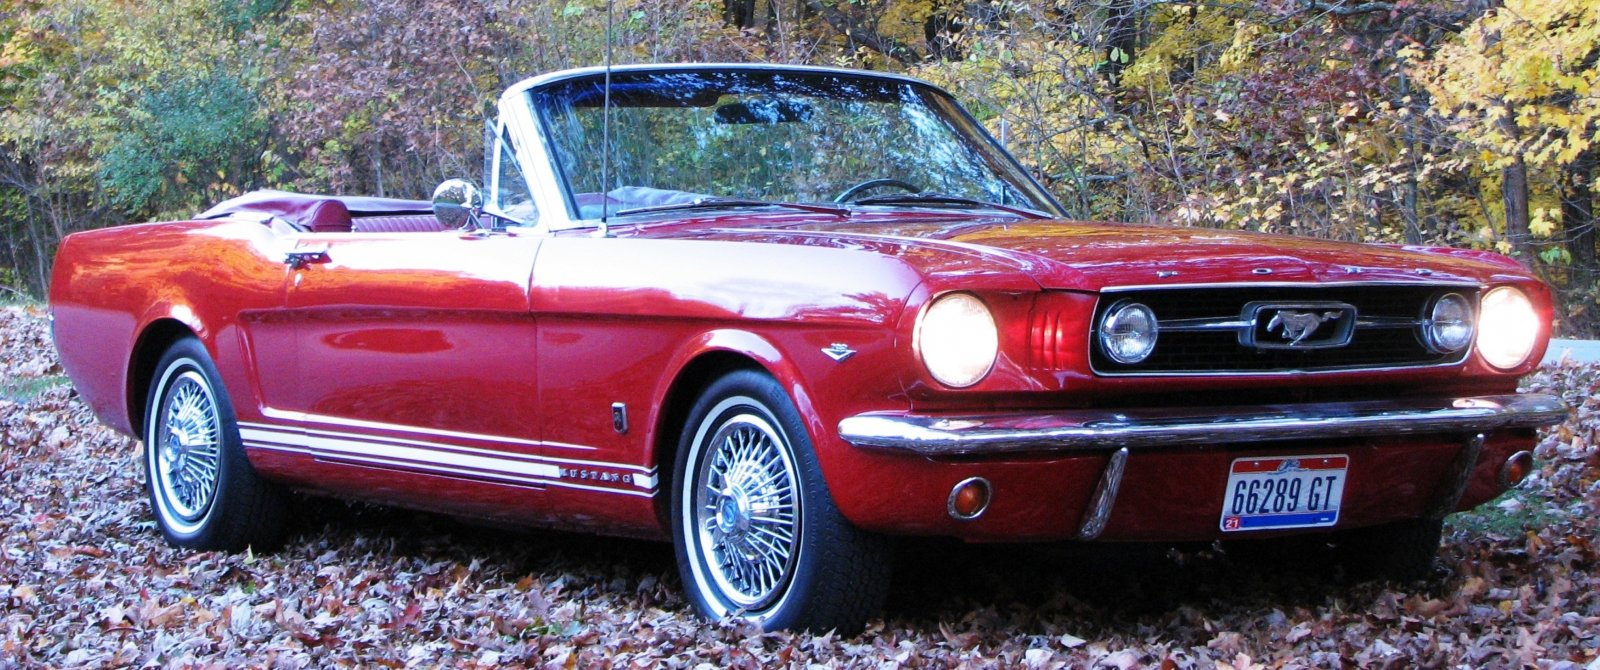 Click image for larger version  Name:MustangGT.jpg Views:161 Size:328.3 KB ID:59760